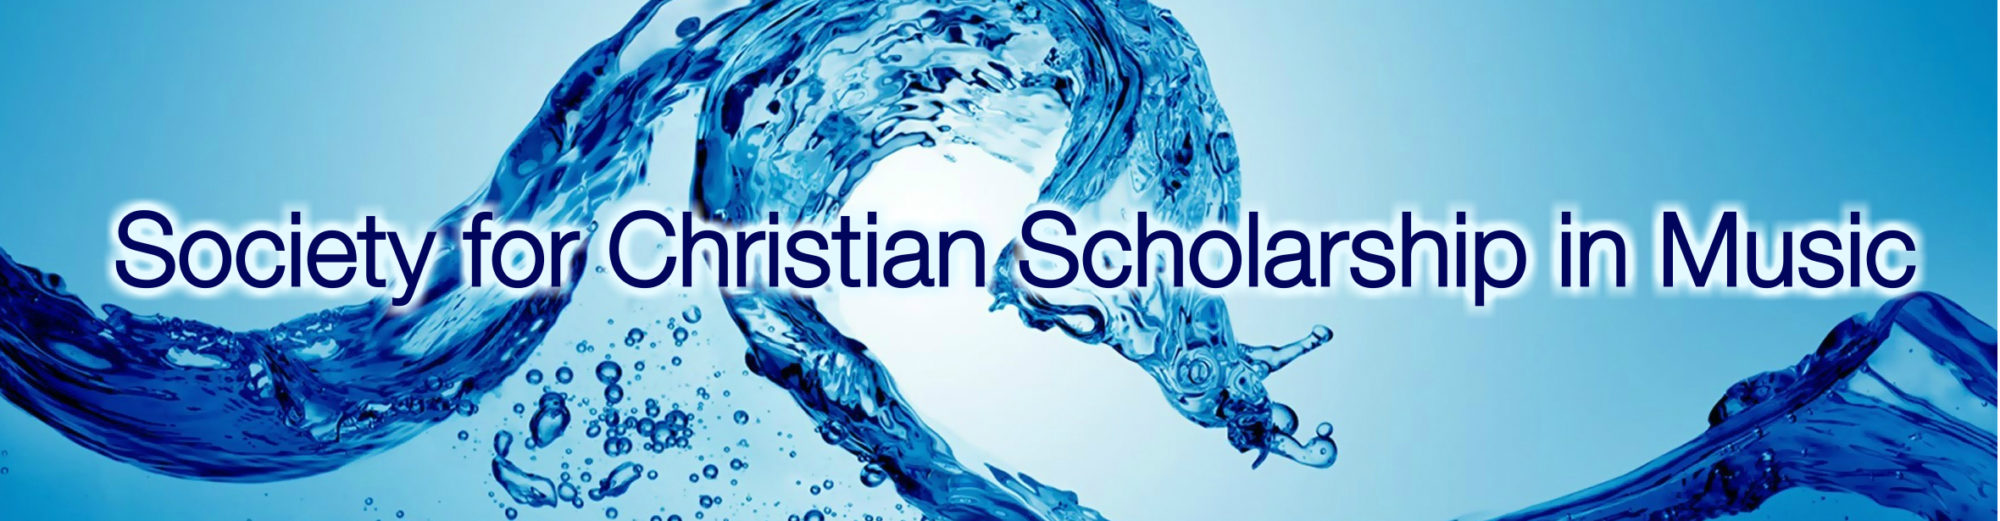 Society for Christian Scholarship in Music